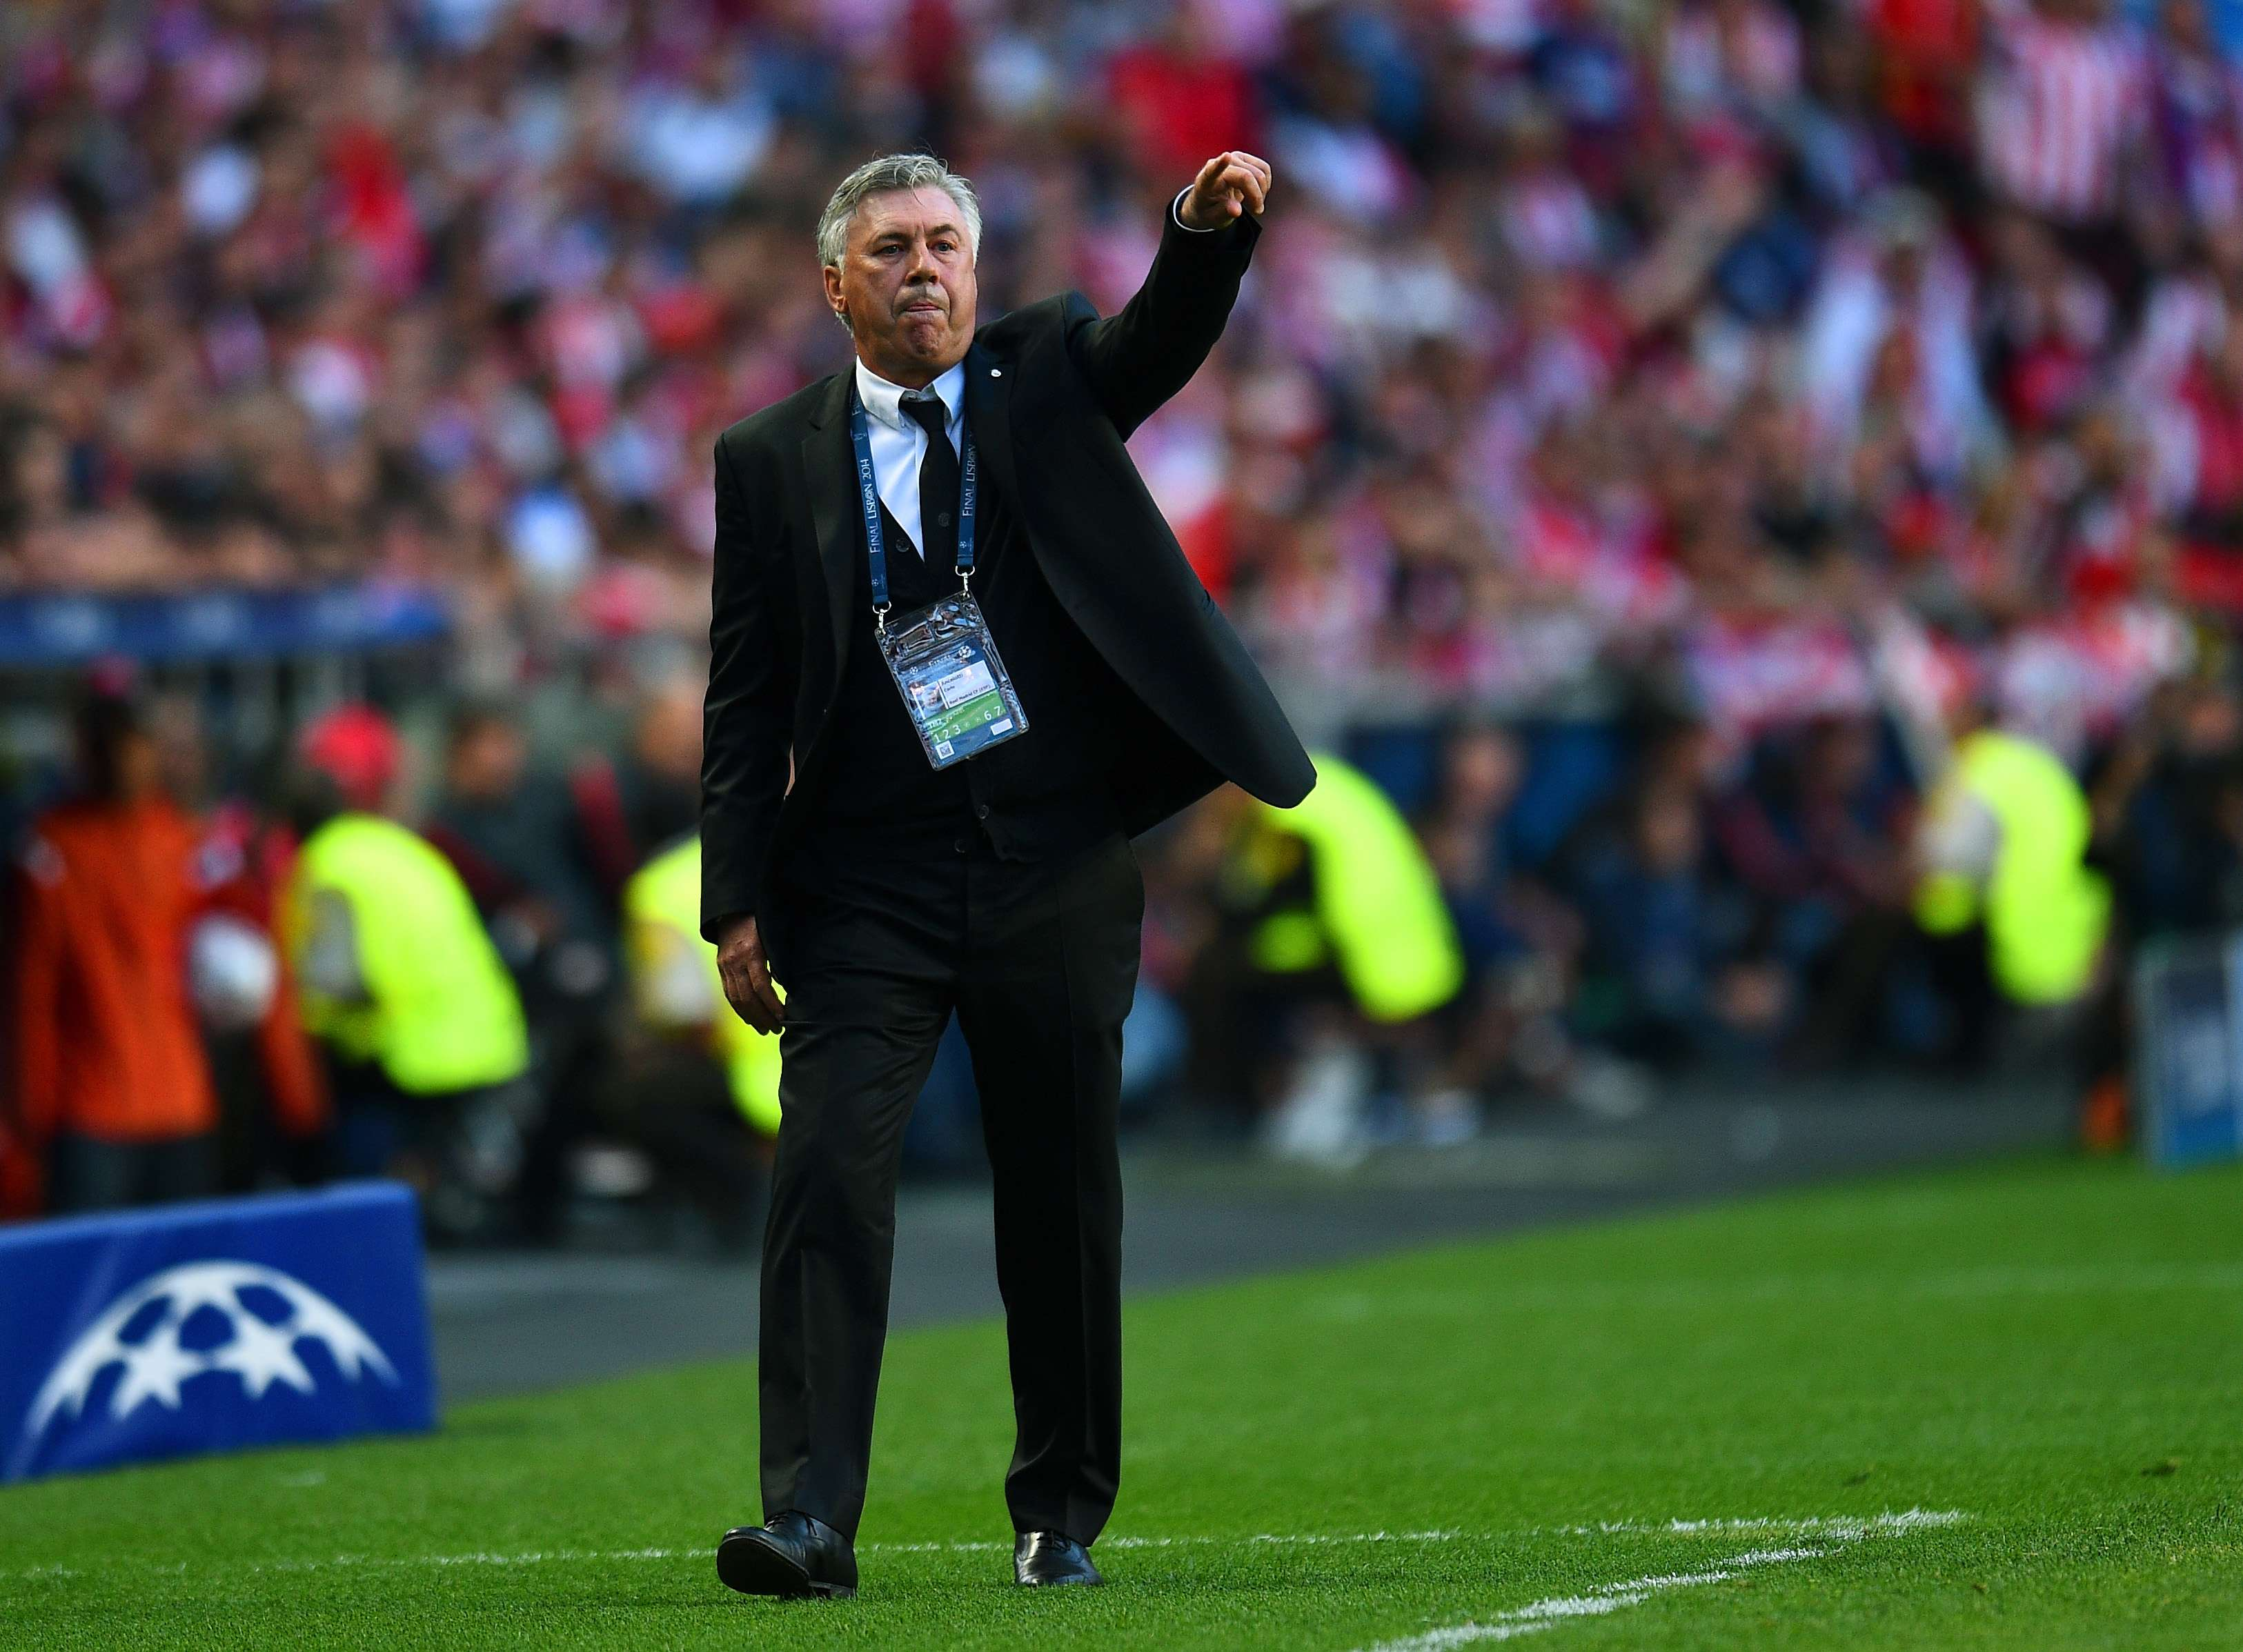 Ancelotti Foto: Getty Images